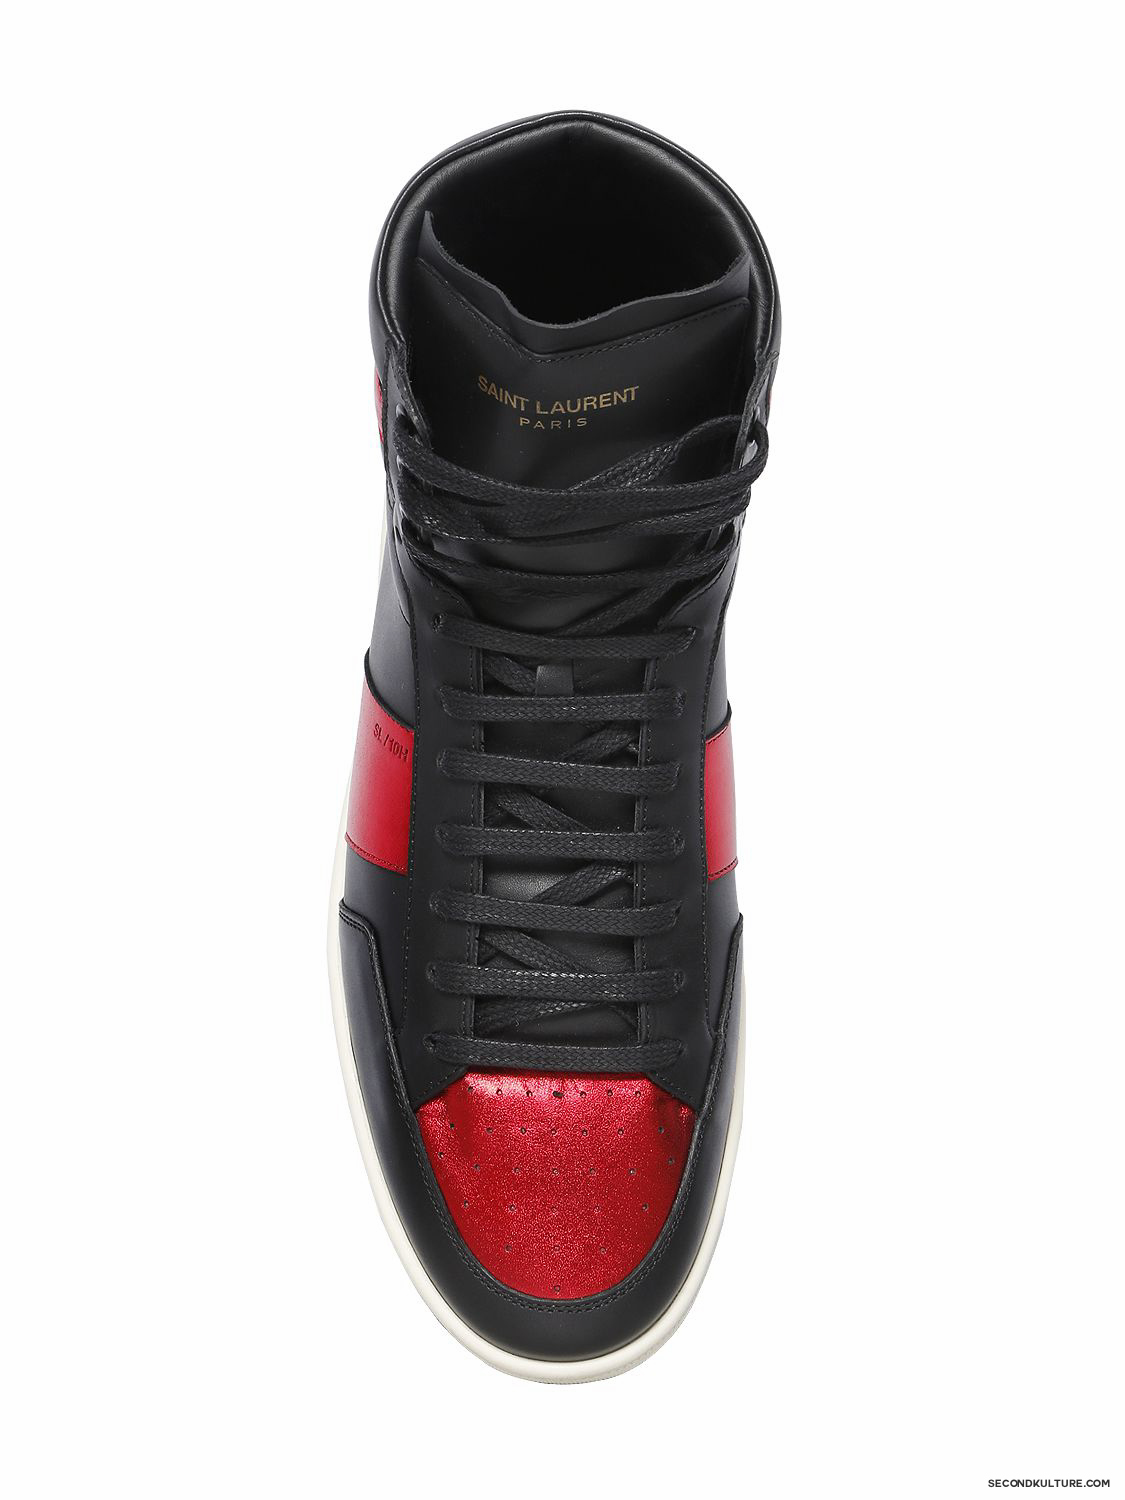 Saint-Laurent-Black-and-Red-Lame-Leather-SL10H-High-Top-Sneakers-Fall-Winter-2015-2